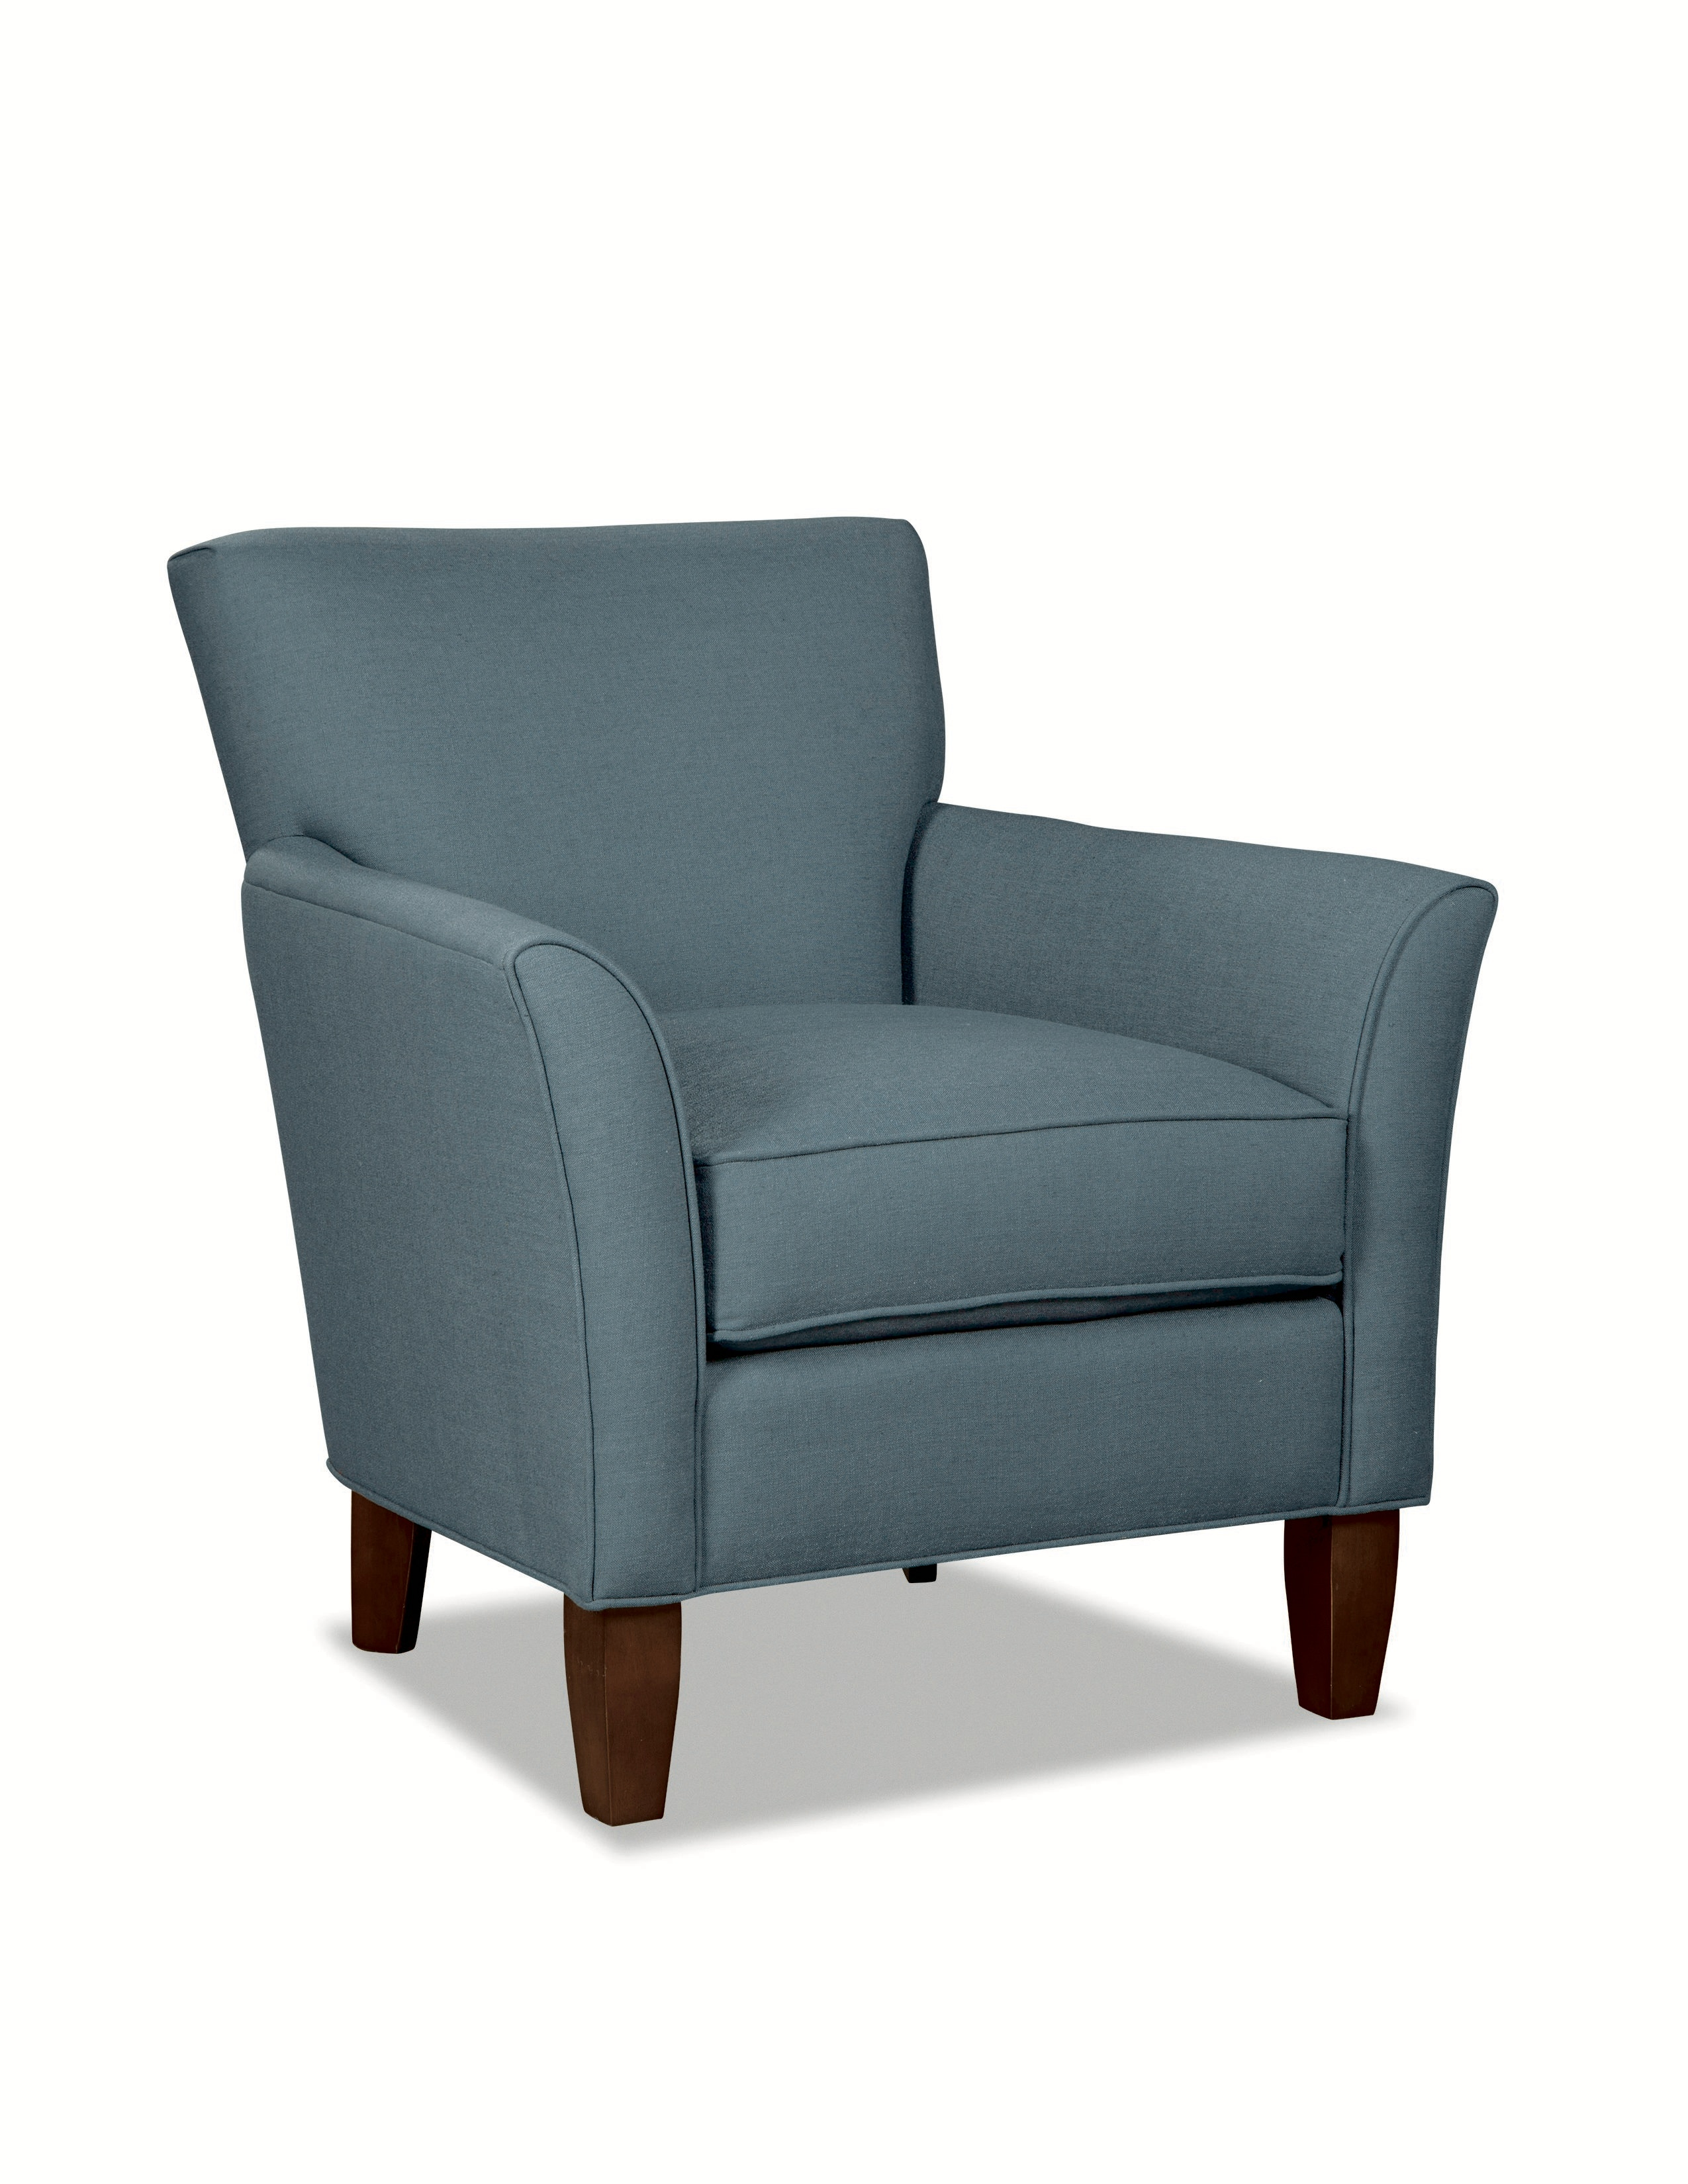 Cozy Life Living Room Accent Chair 692254 At Talsma Furniture